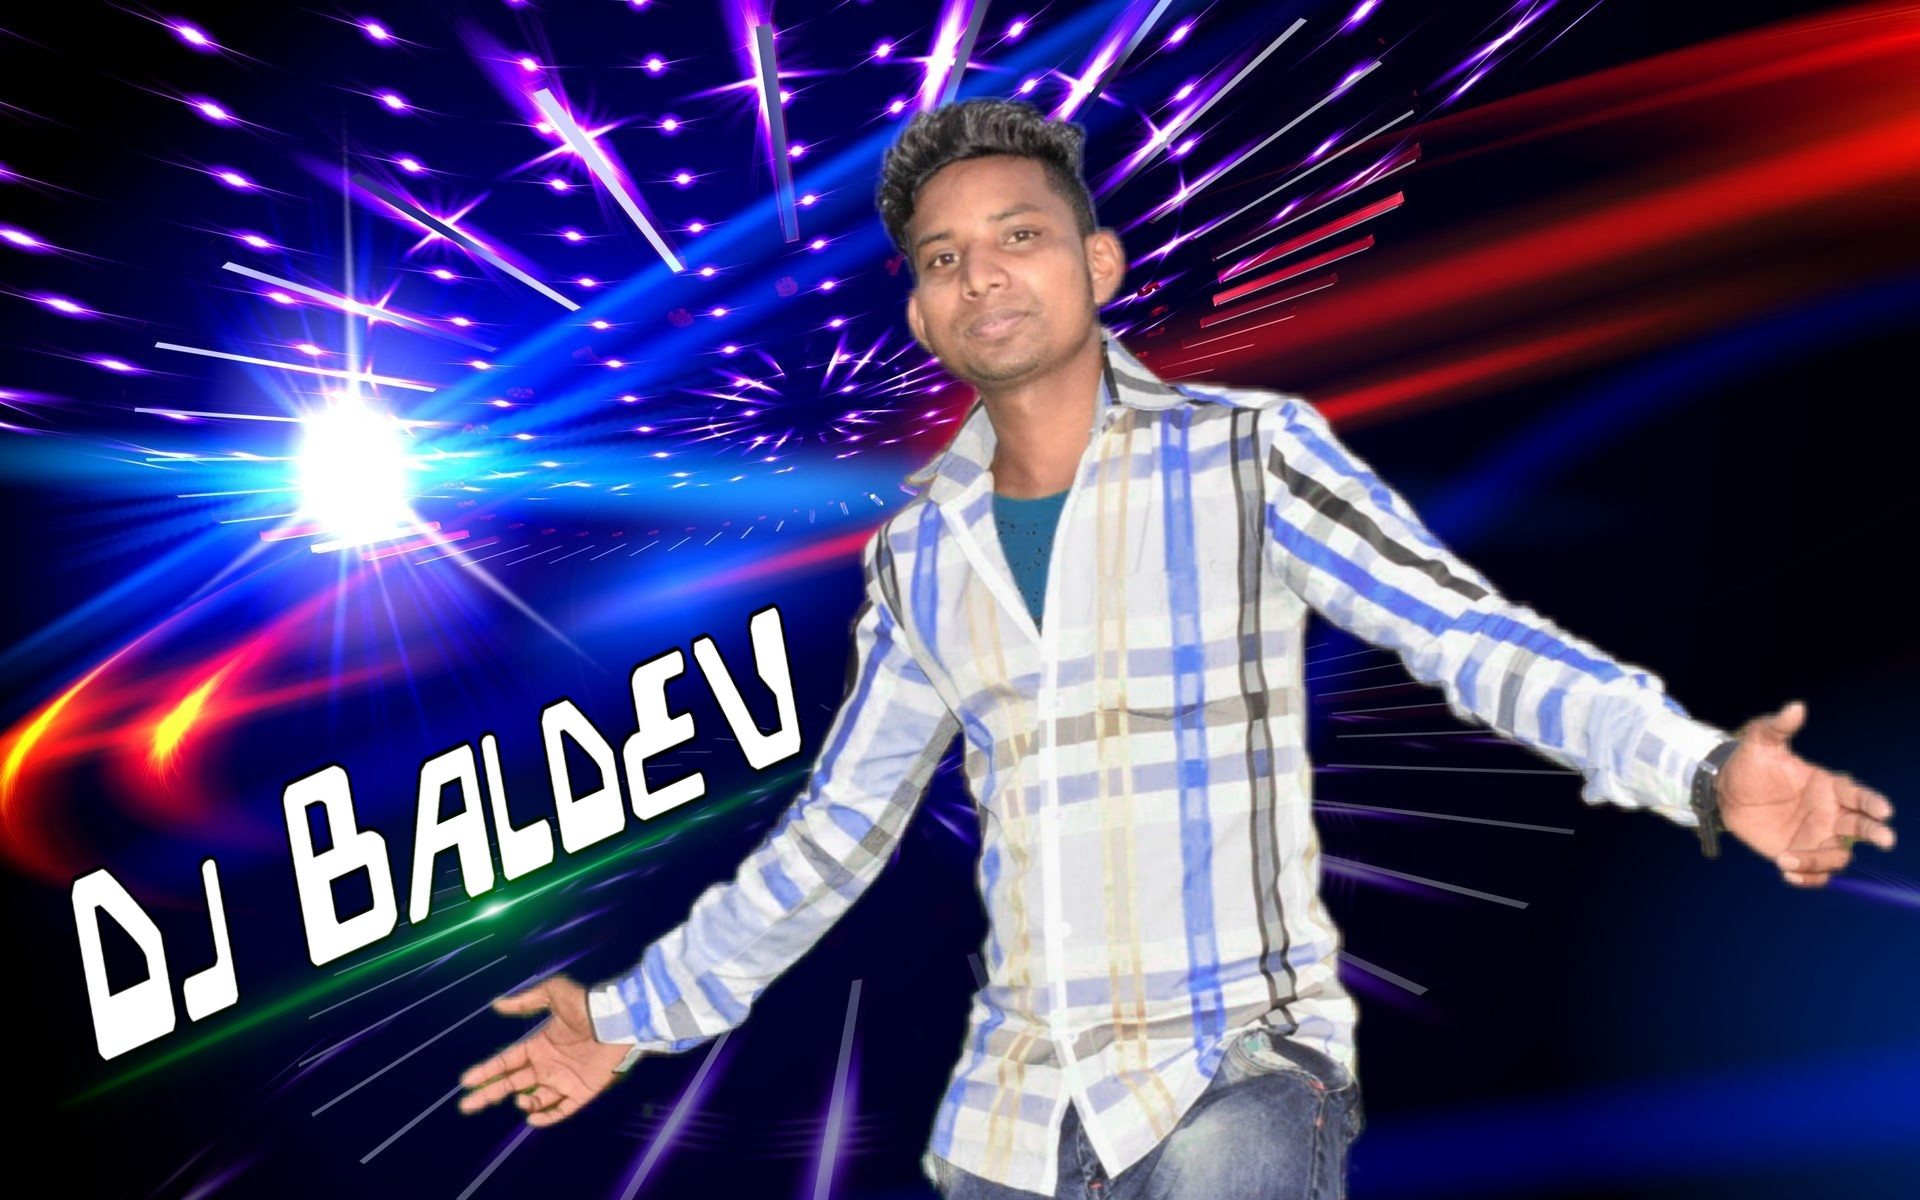 Aey re Aey Gati (New ST Full 2 Dance Olceshtra Hard Punc Slow Sad Styal  Super Duper Matal Dance  Mix By DJ BalDev Murmu Gogna 9973179289)